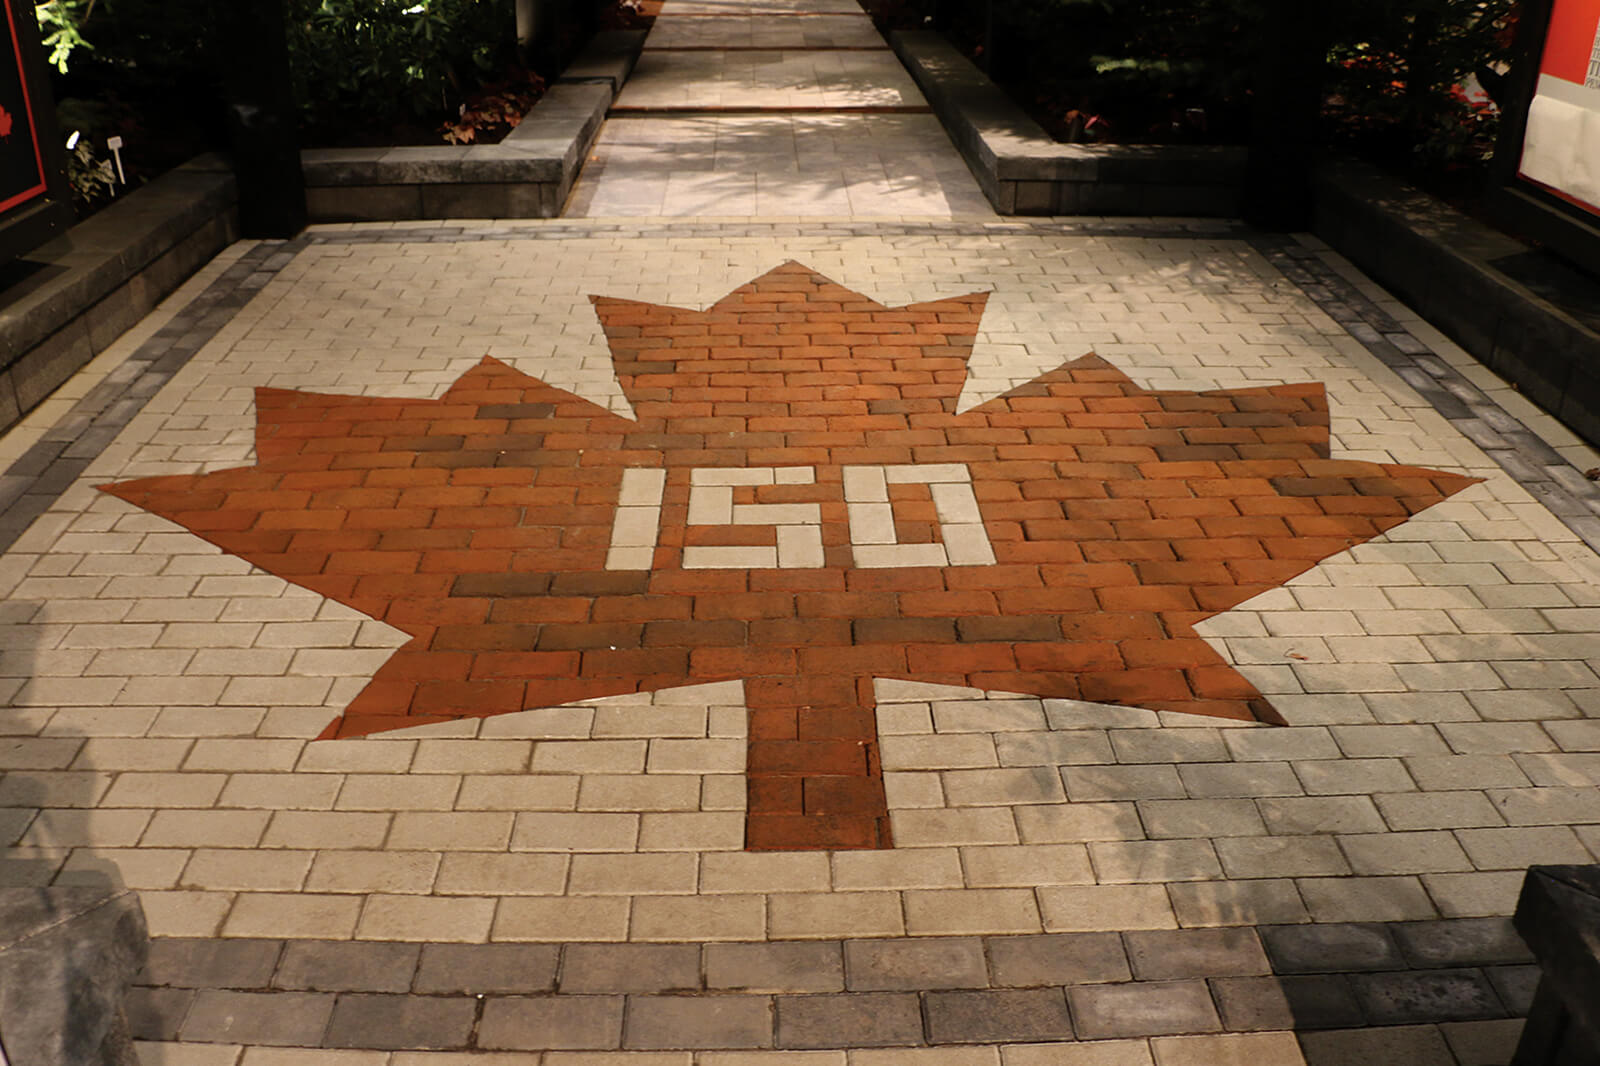 interlocking stone with a red maple leaf pattern and 150 in the centre